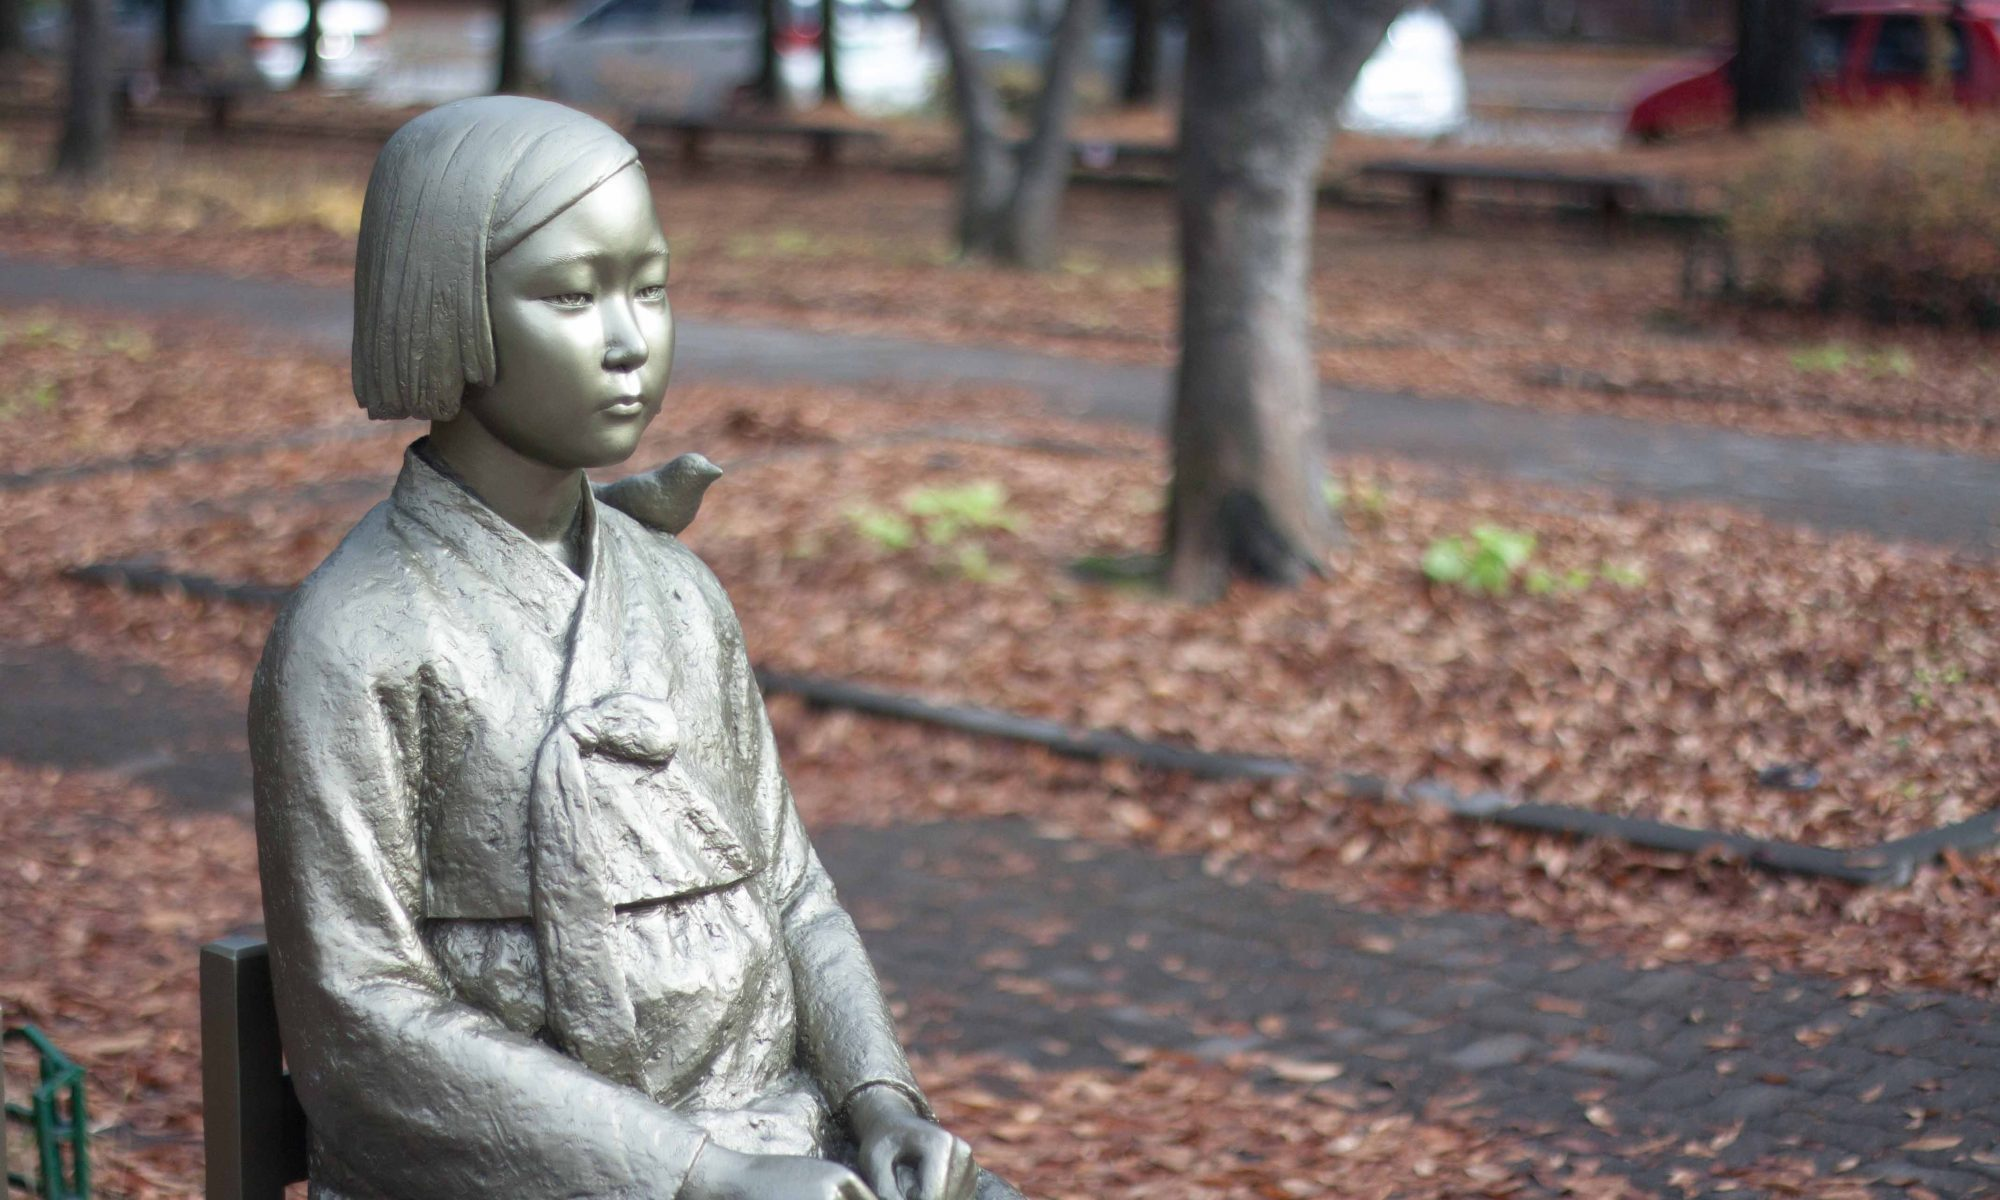 Statue of a young girl sitting